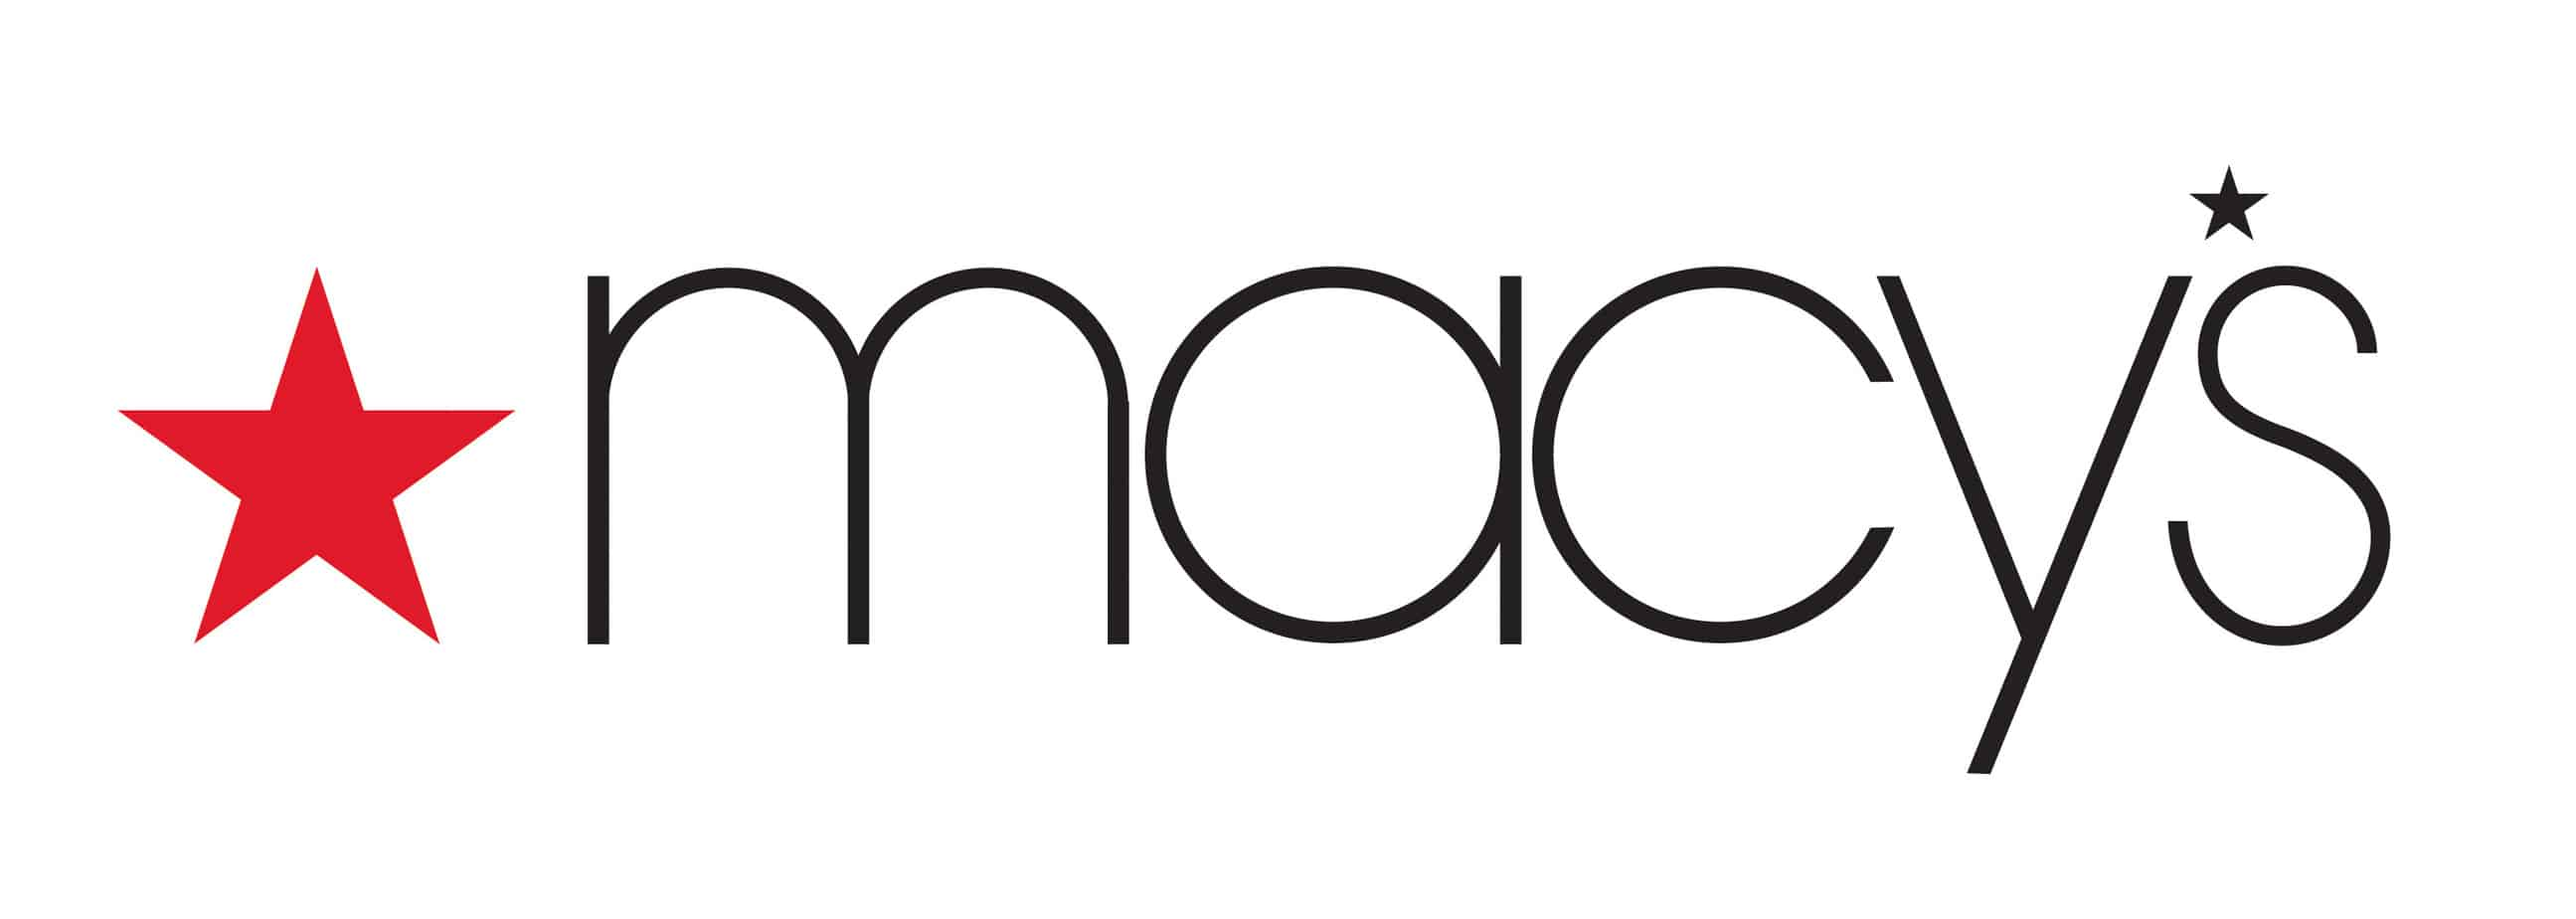 Macys has always been one of America's favorite department stores, offering some of the highest quality fashions and home items at an affordable price.